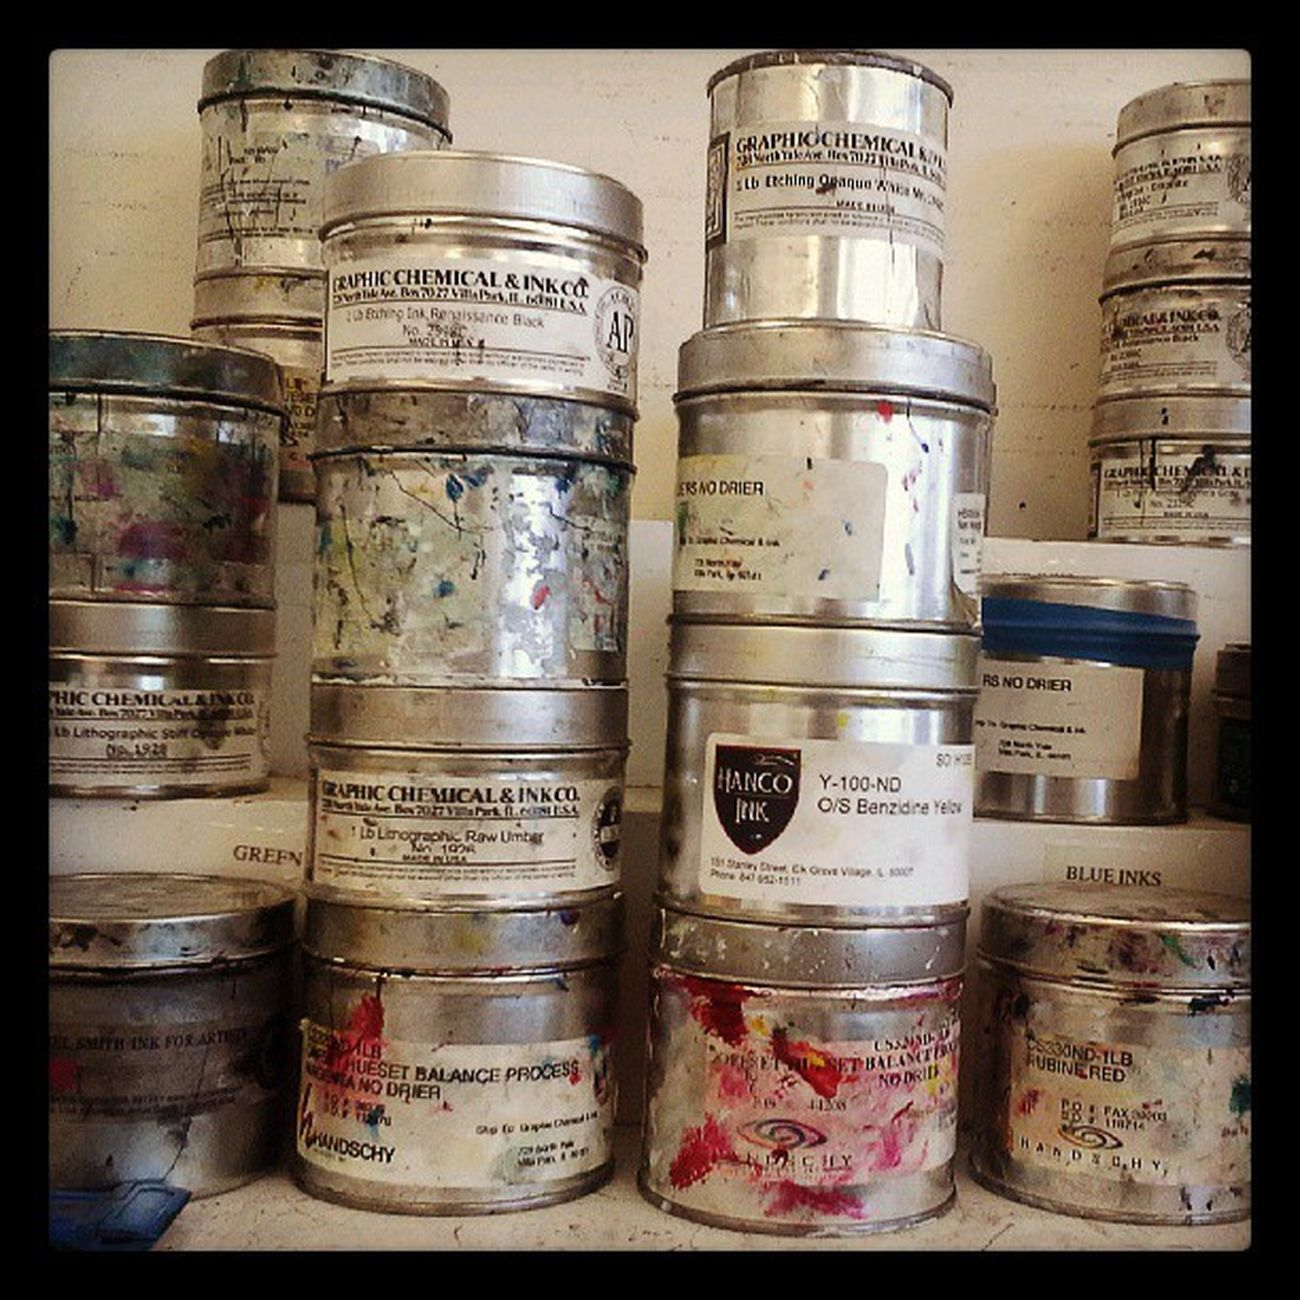 Details Photooftheday Printmaking Labels Cans Prints Minimalalma UniversityOfNebraska Printshop Photographyalma